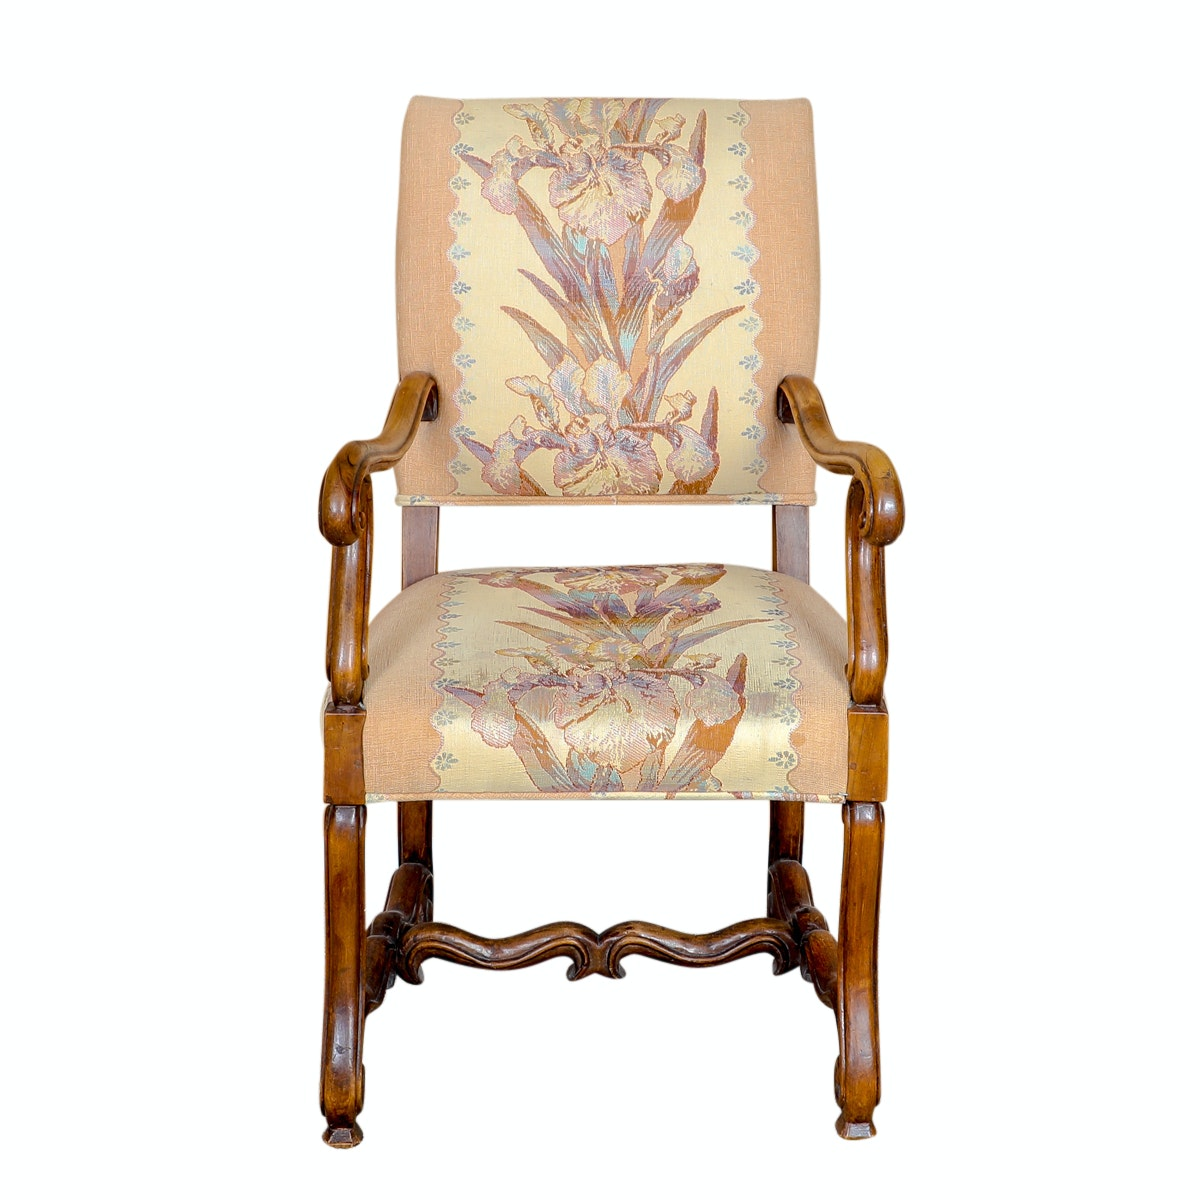 Louis XIV Style Chair with Iris Upholstery